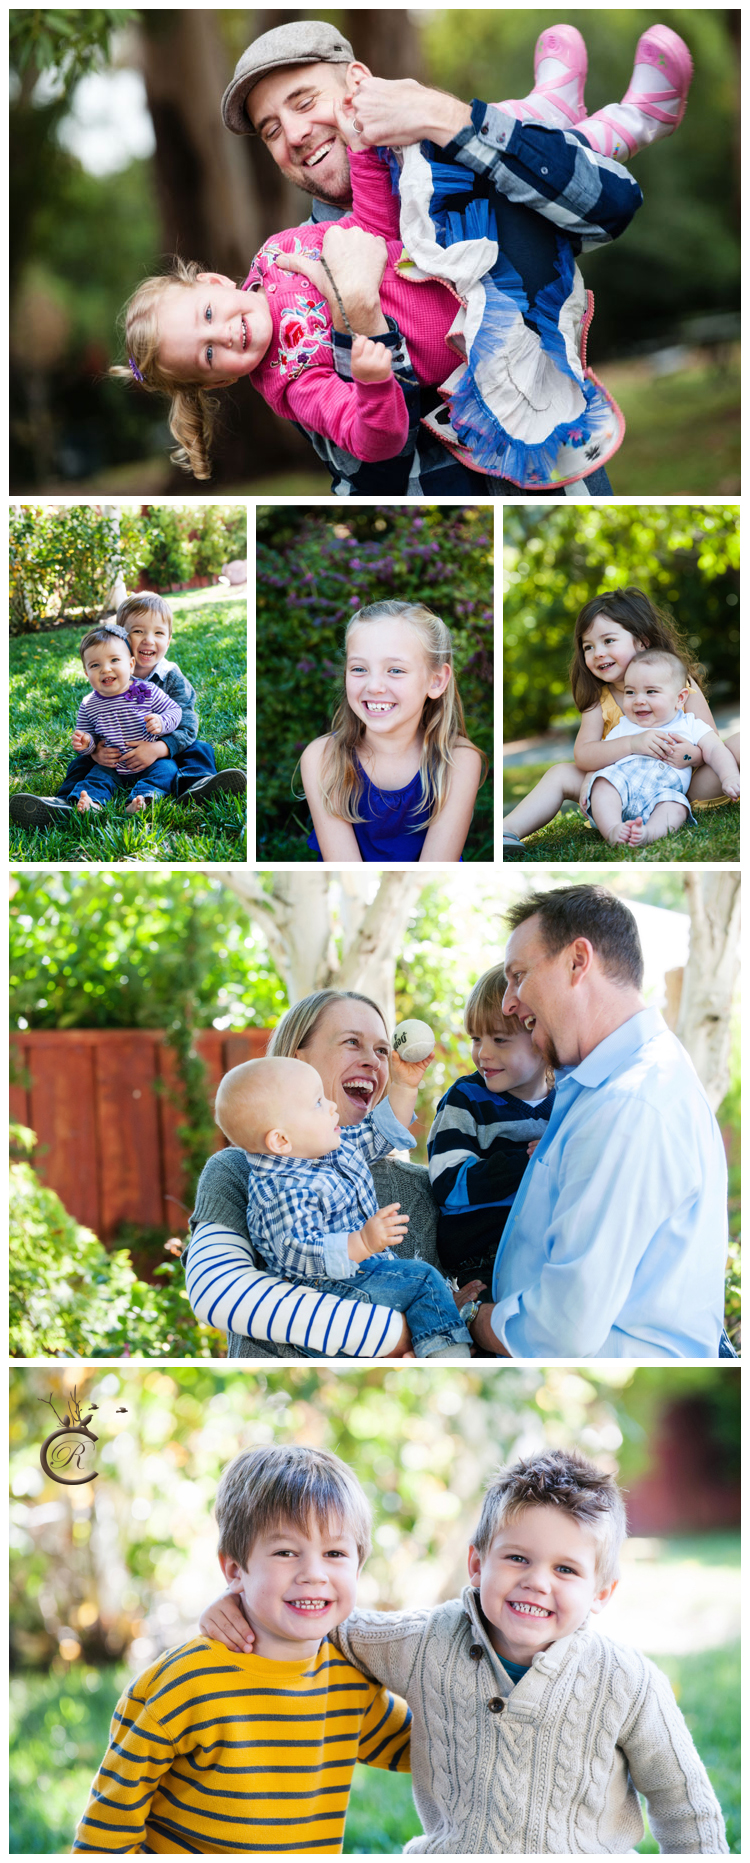 Family portraits | Carrie Richards Photography